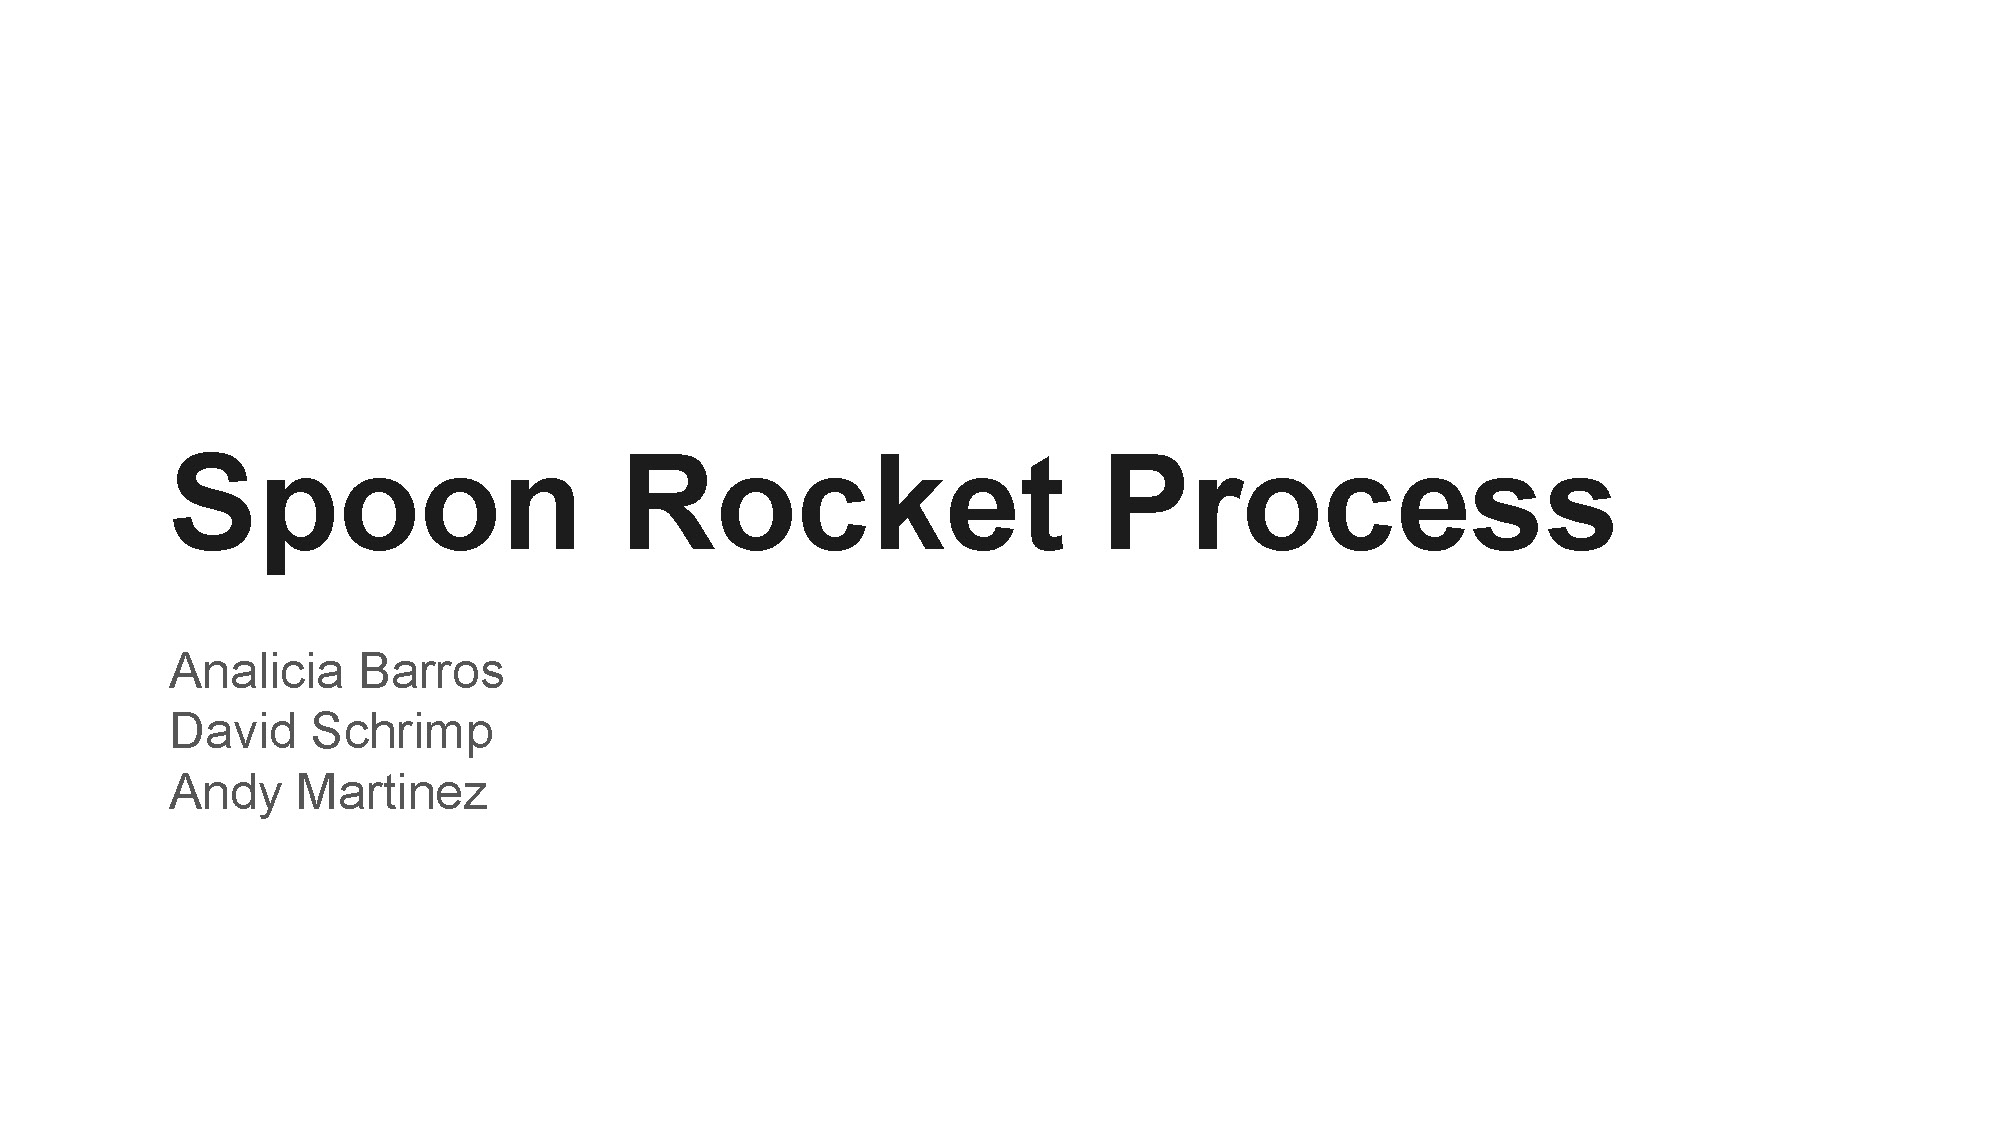 Project2_Process_Spoonrocket-deleted blank pages_Page_01.jpg